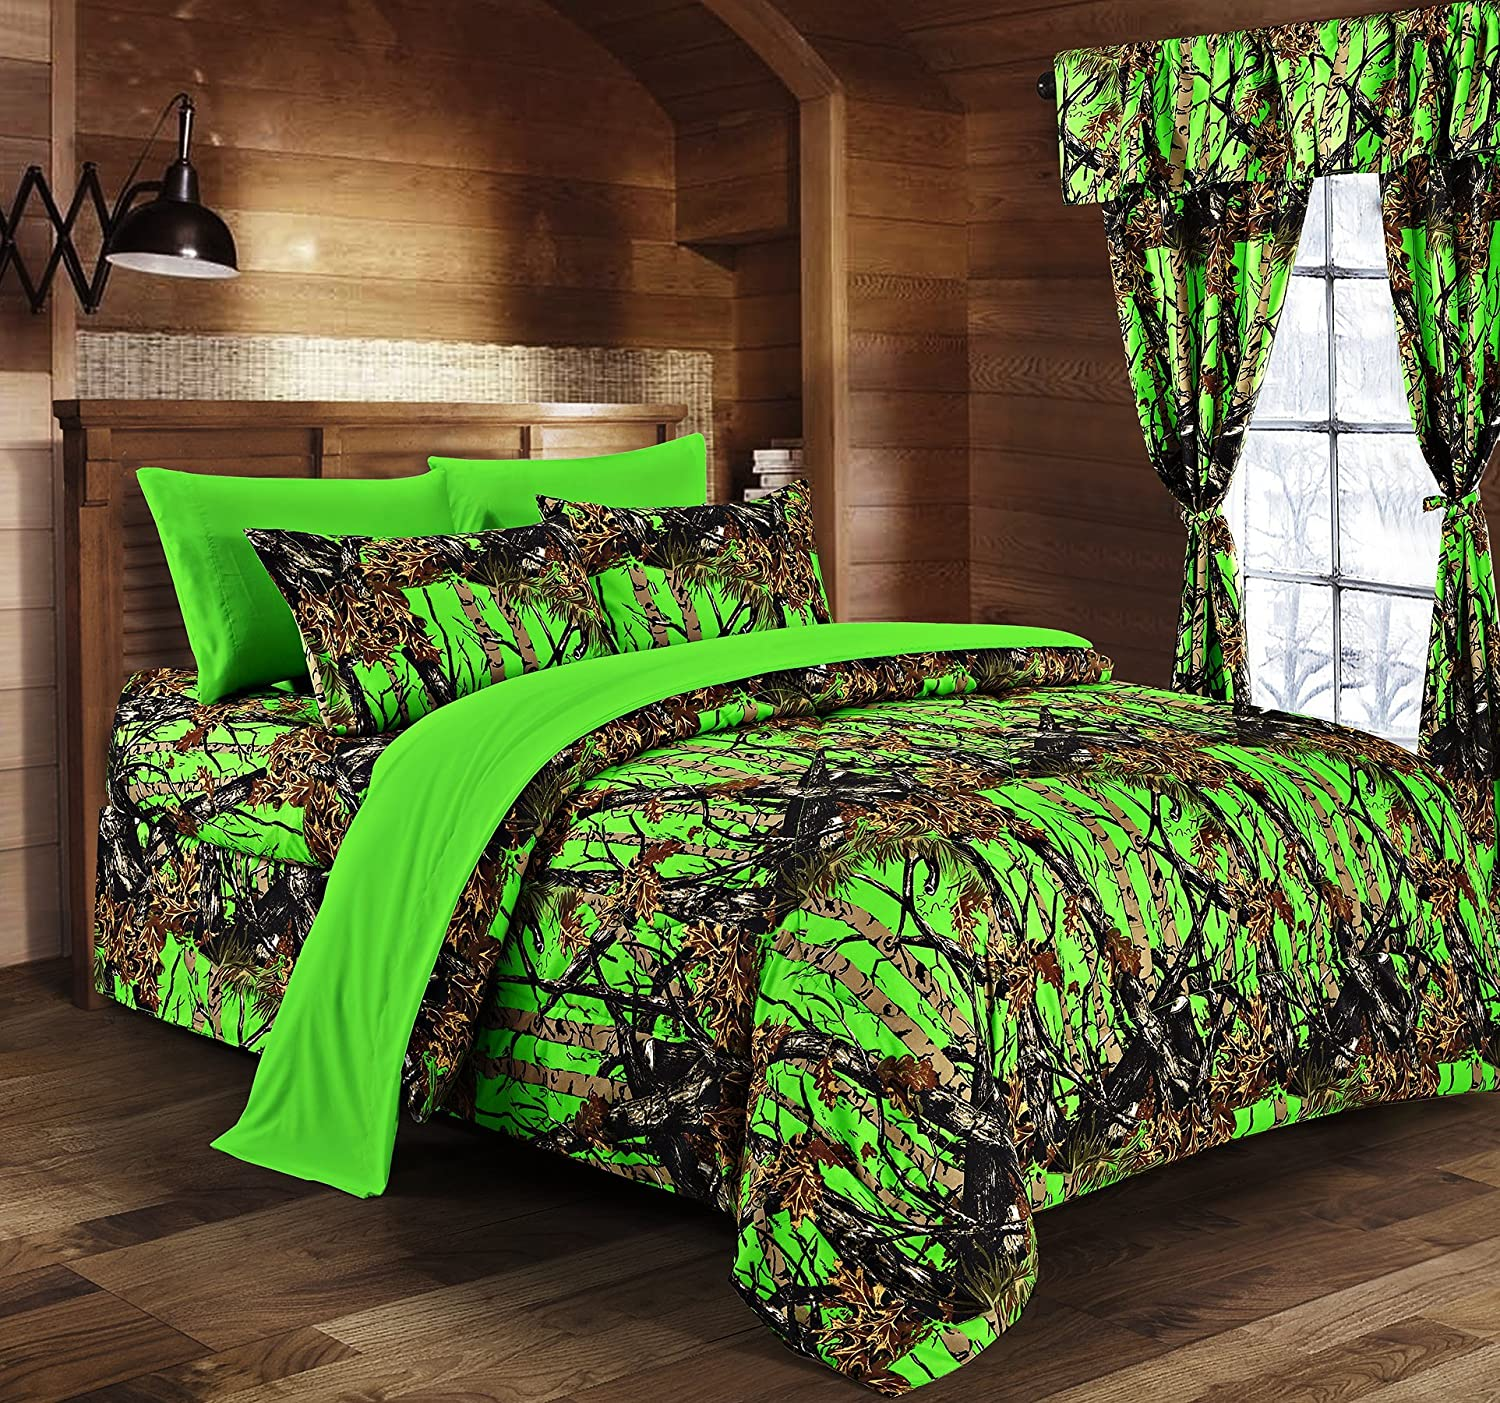 Hunting Bedding Twin